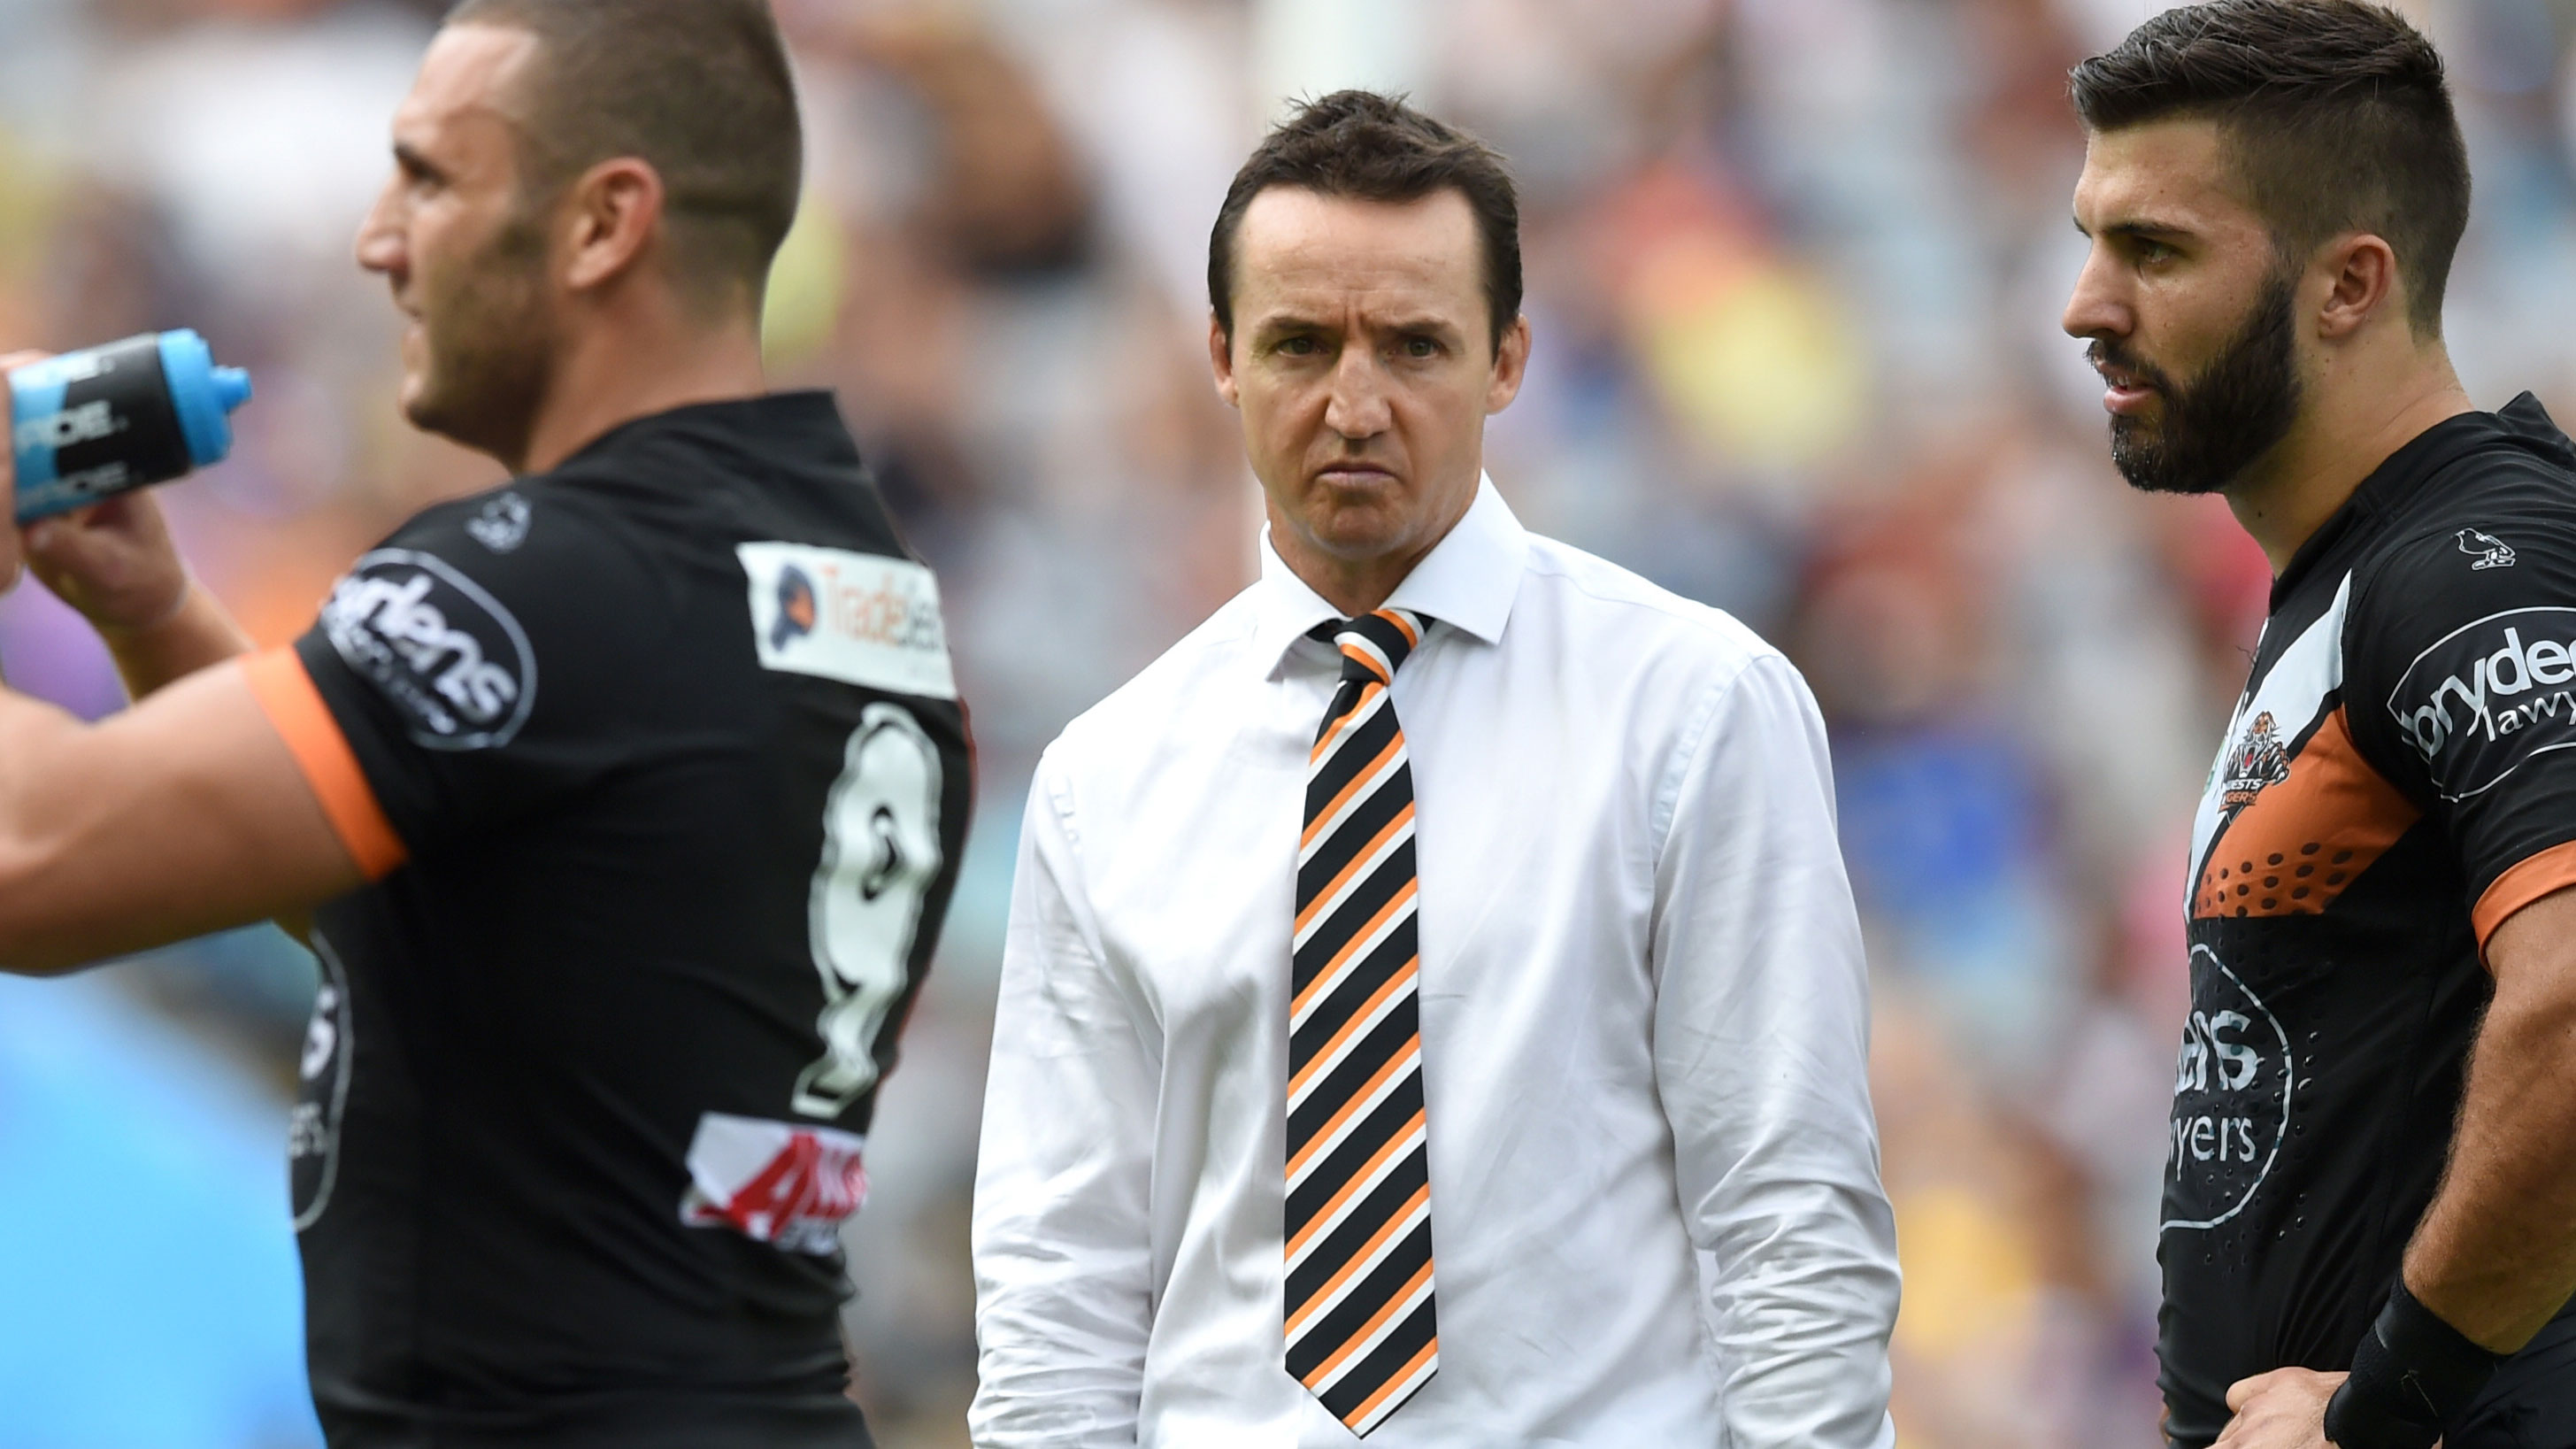 Jason Taylor (centre) and Robbie Farah (left) parted on unhappy terms at the Wests Tigers.